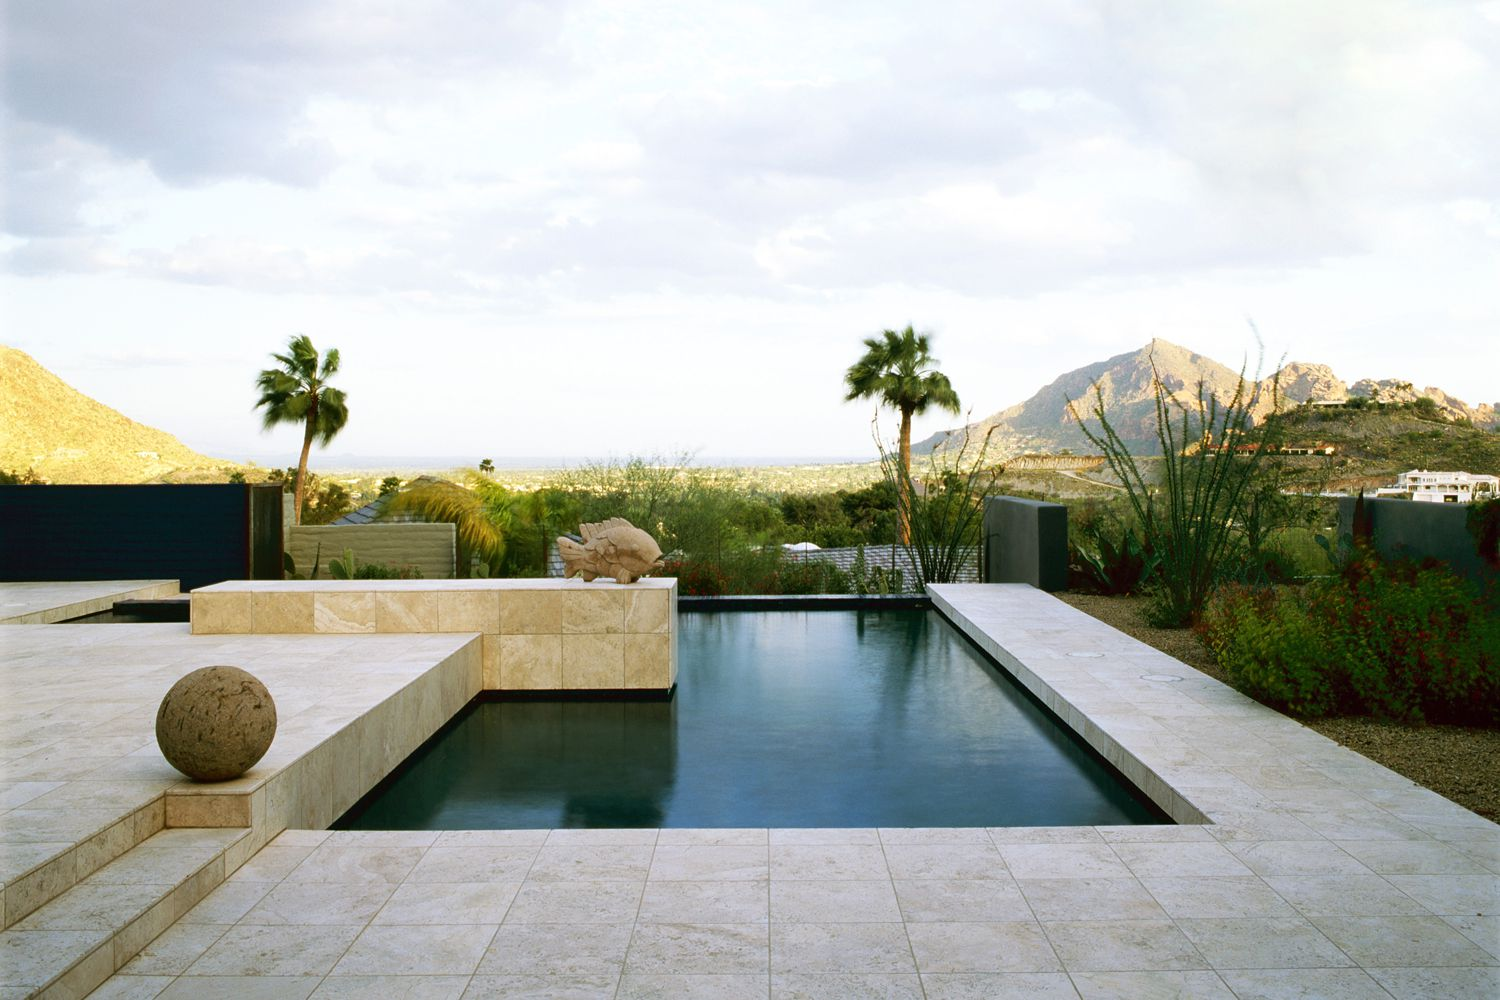 Phoenix Pool Remodel Concept Captivating Is It Safe To Let My Dog Swim In The Pool Design Ideas